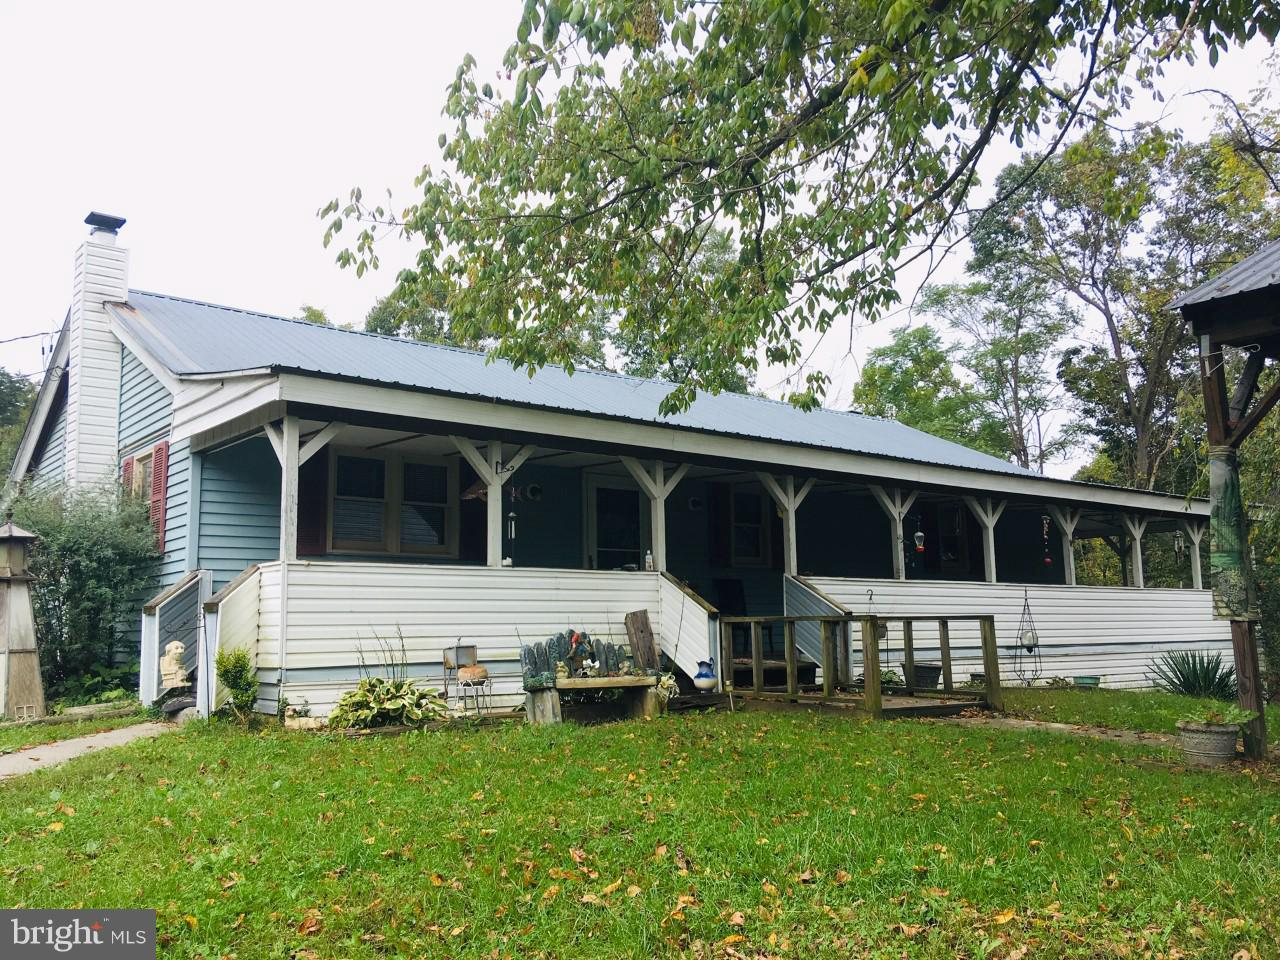 So many possibilities on this nearly 9 acres of unrestricted property. Four possible rentals or live